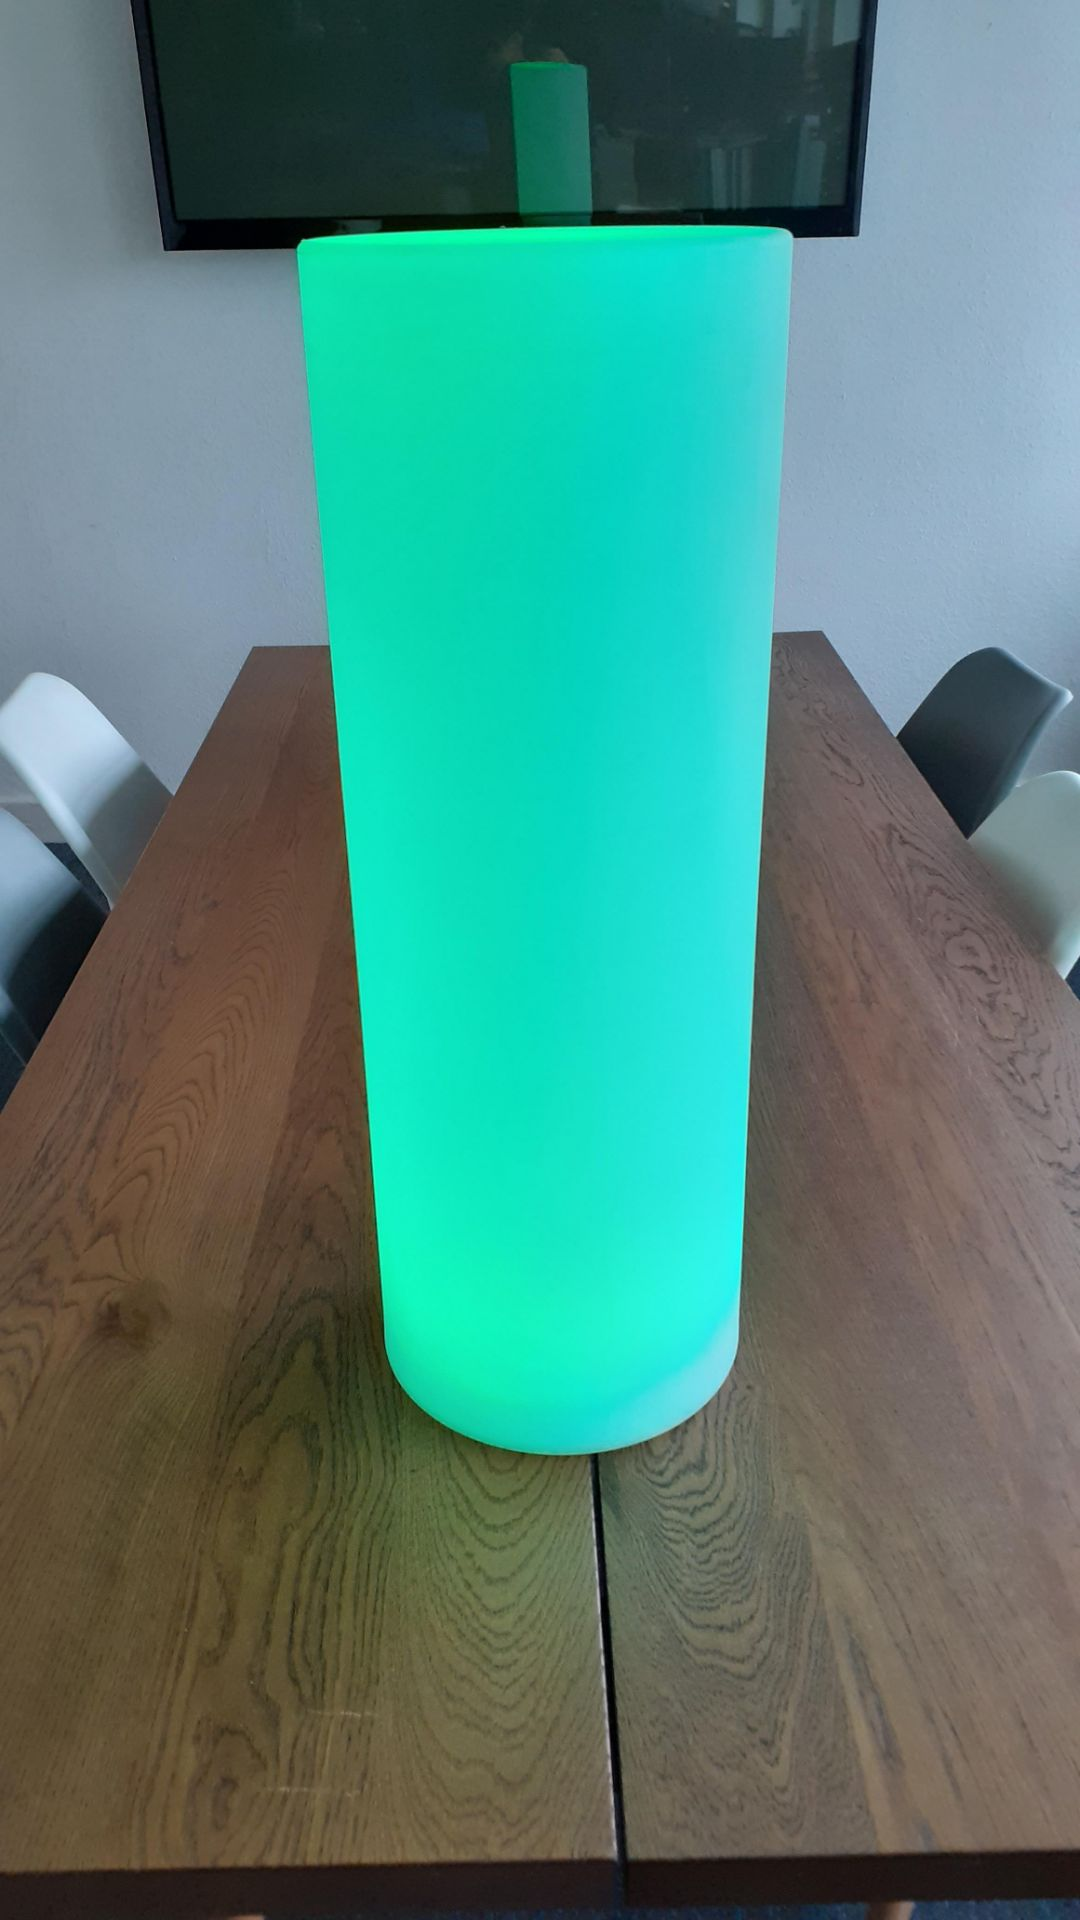 A Playlearn SLUF 70cm Light Up Cylinder with Power Supply and Remote Control (good condition, - Image 9 of 10